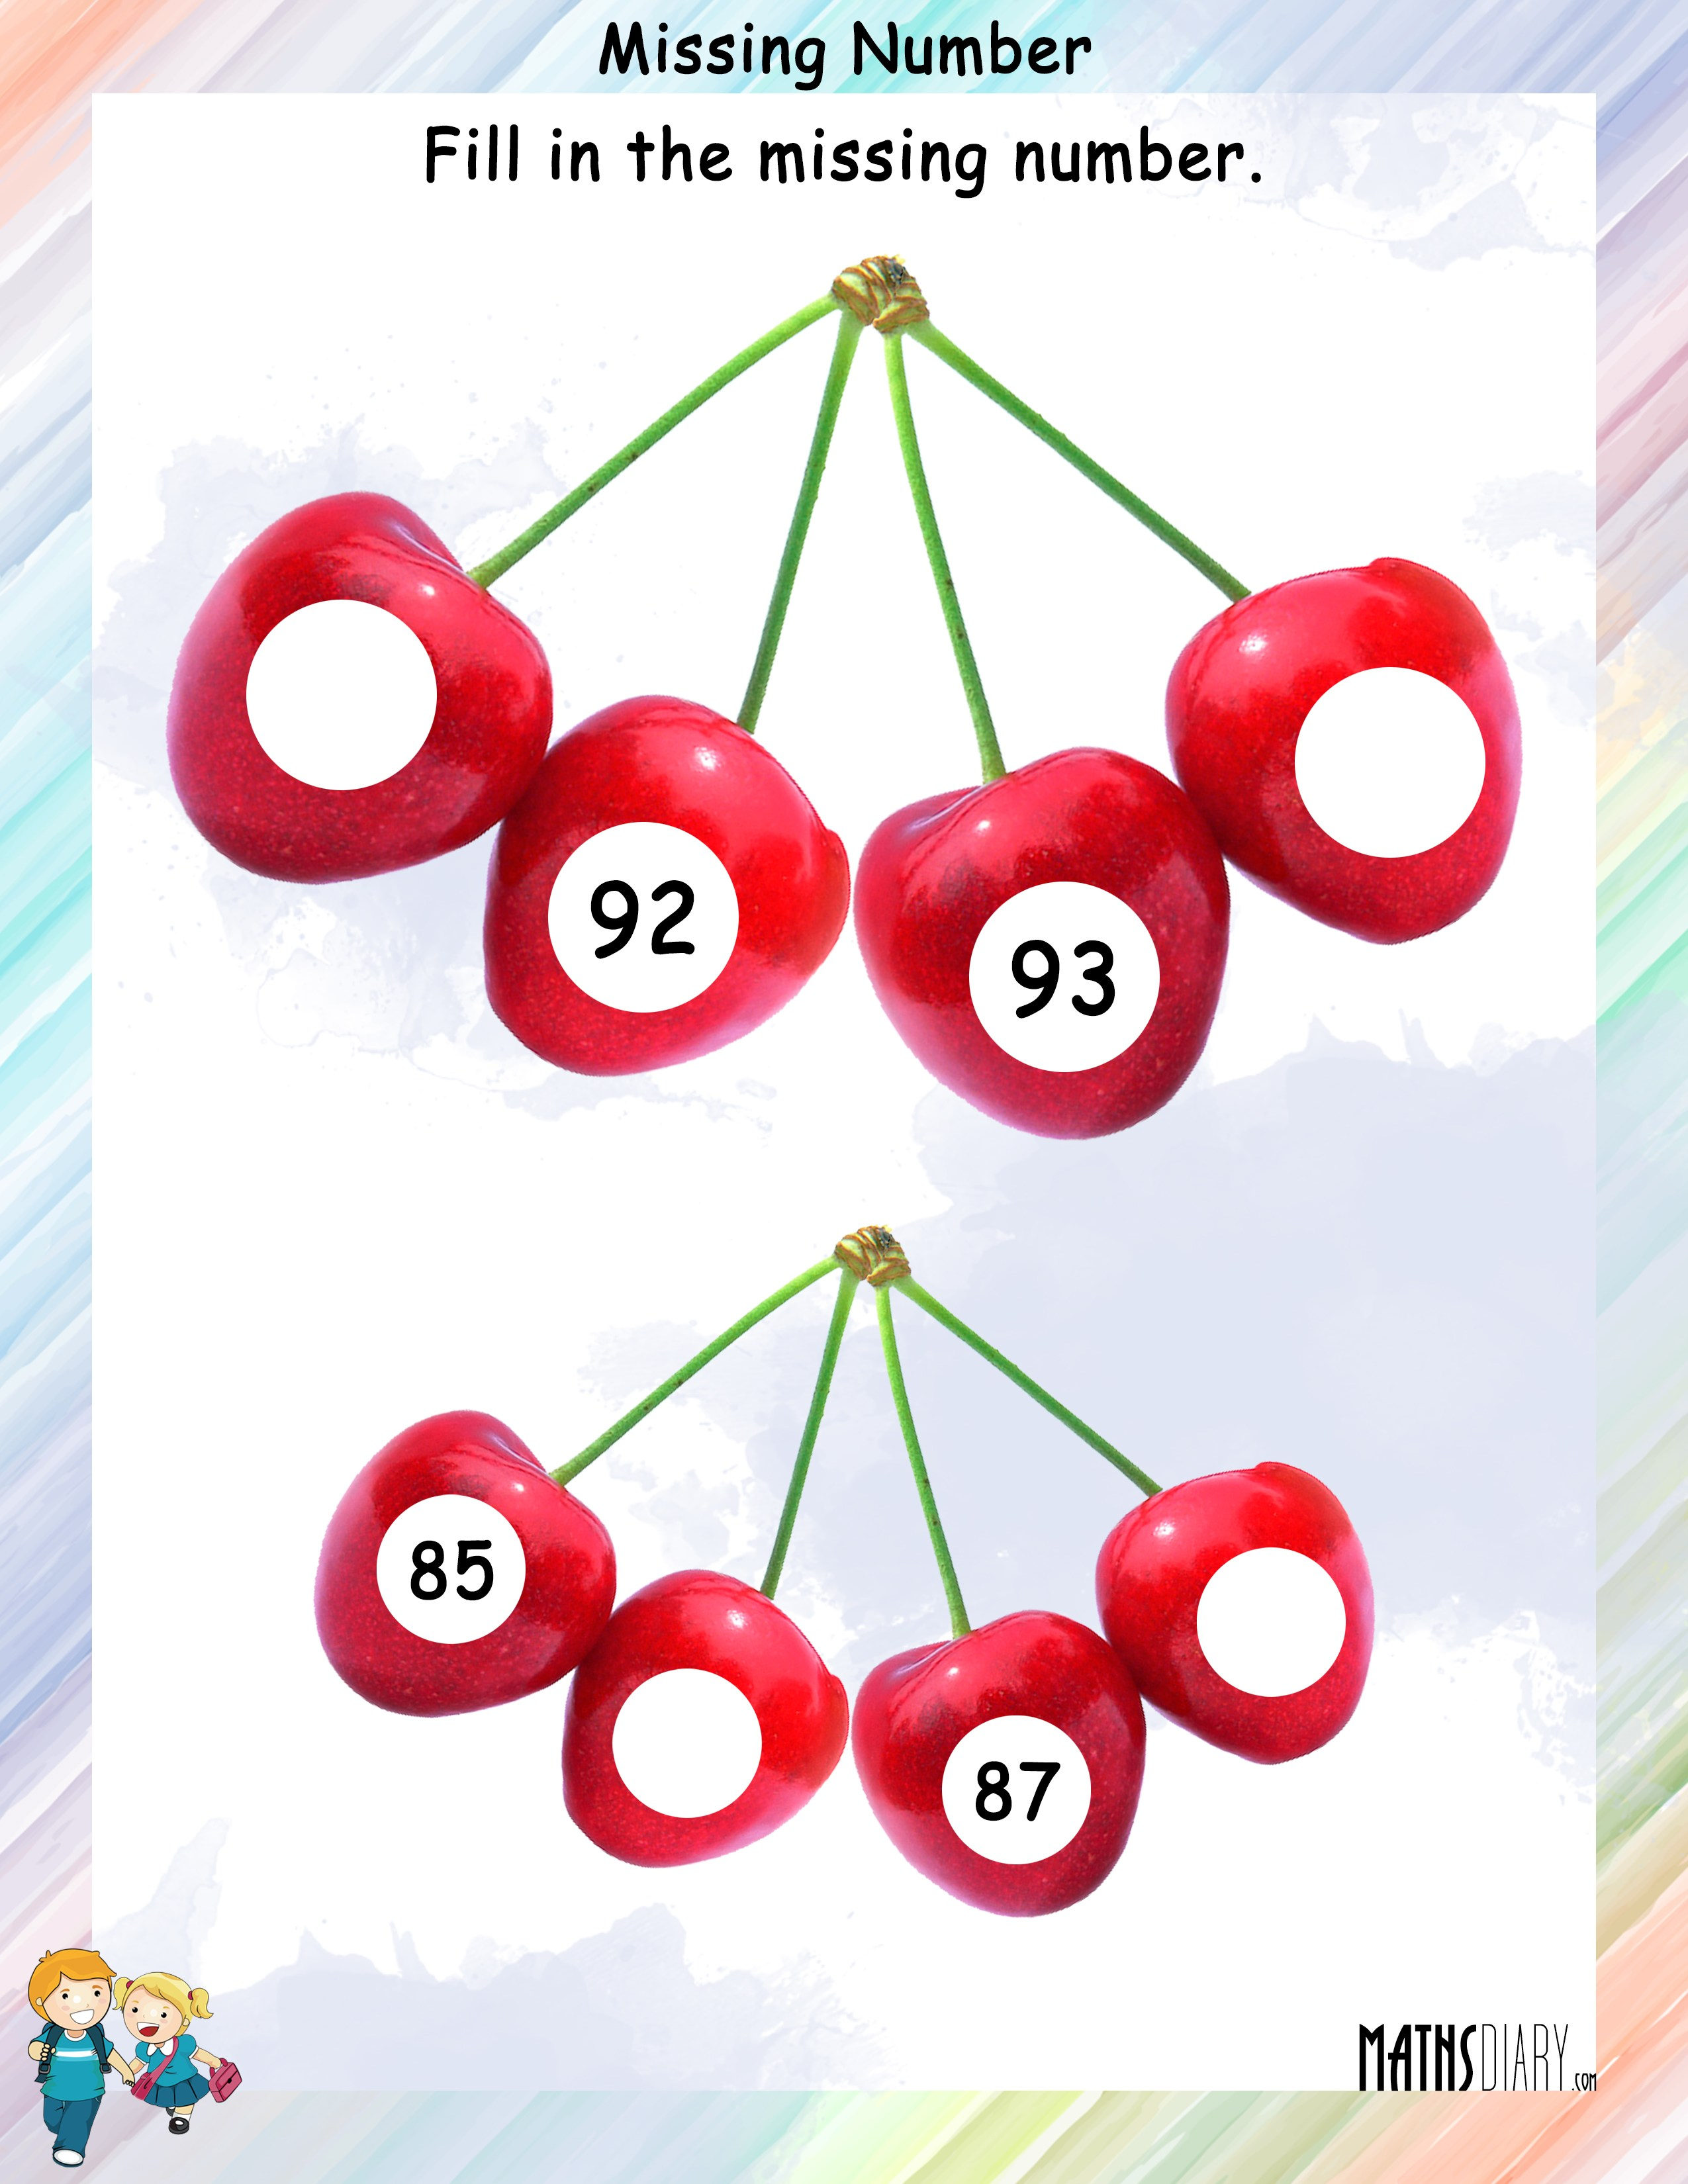 Find The Missing Numbers In The Given Counting